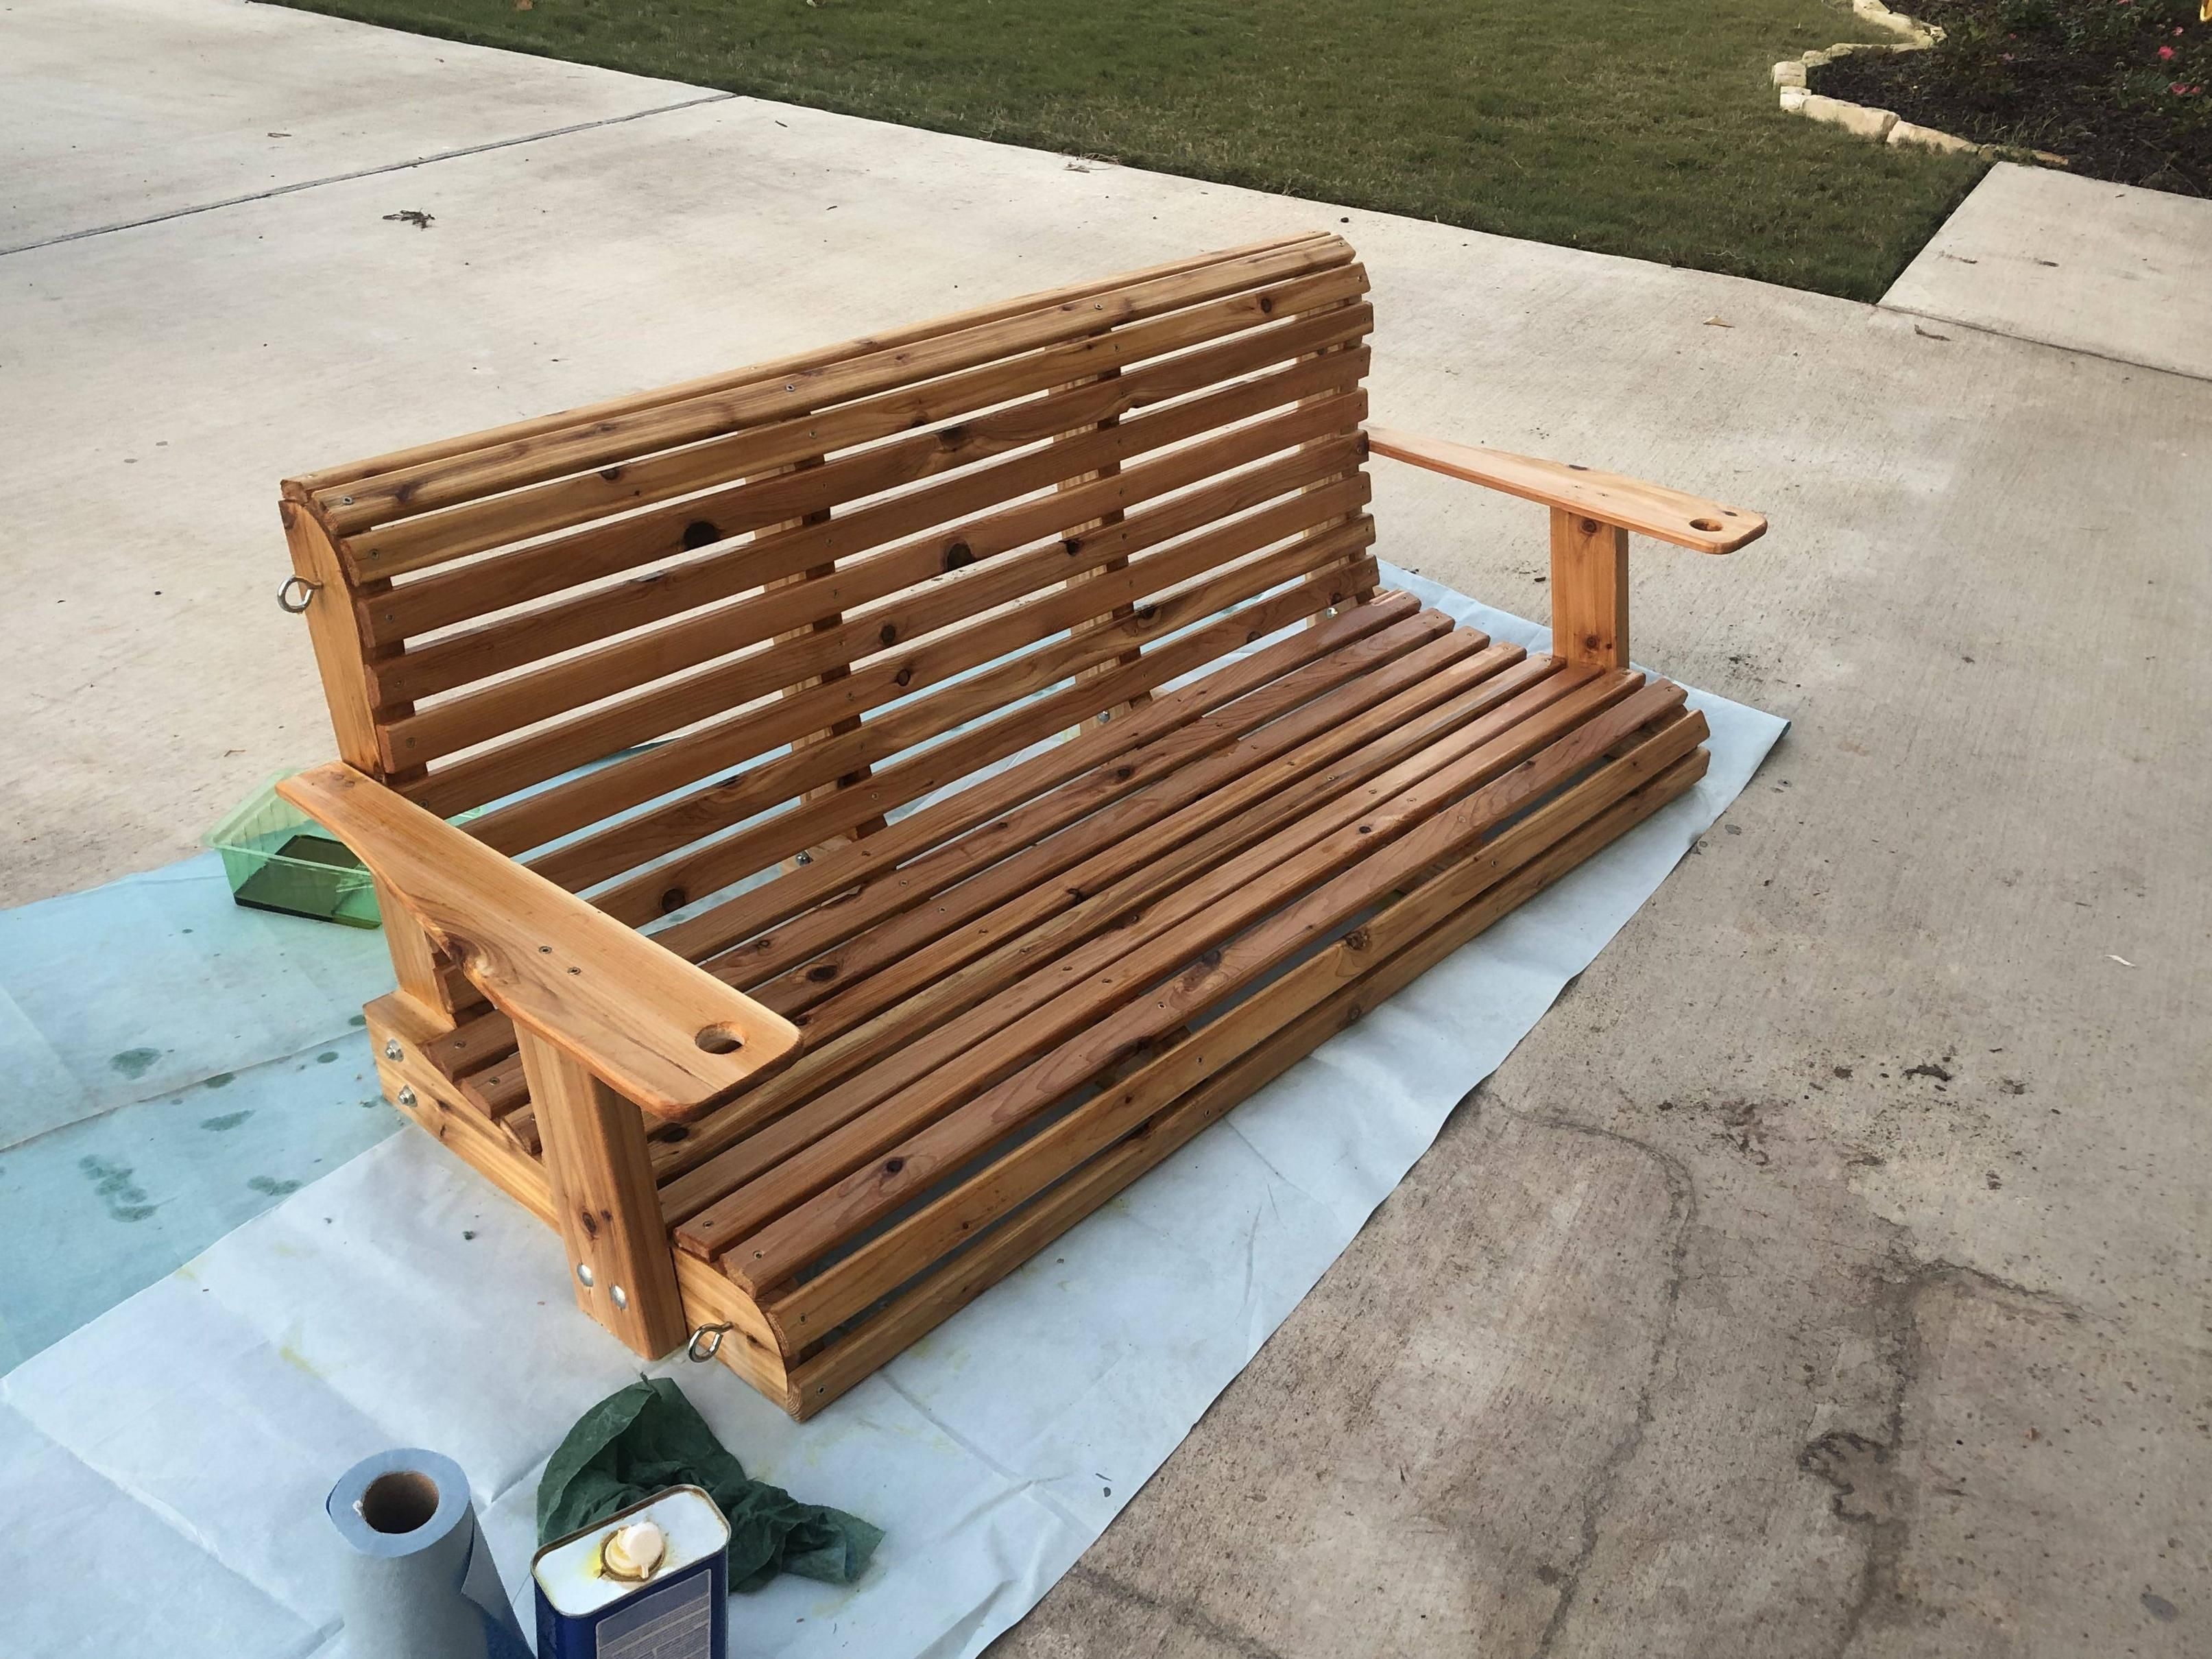 Cedar Porch Swing I Built For A Mothers Day Gift Http Bit Ly 2eax5j5 Porch Swing Woodworking Plans Wood Projects Free Woodworking Project Plans